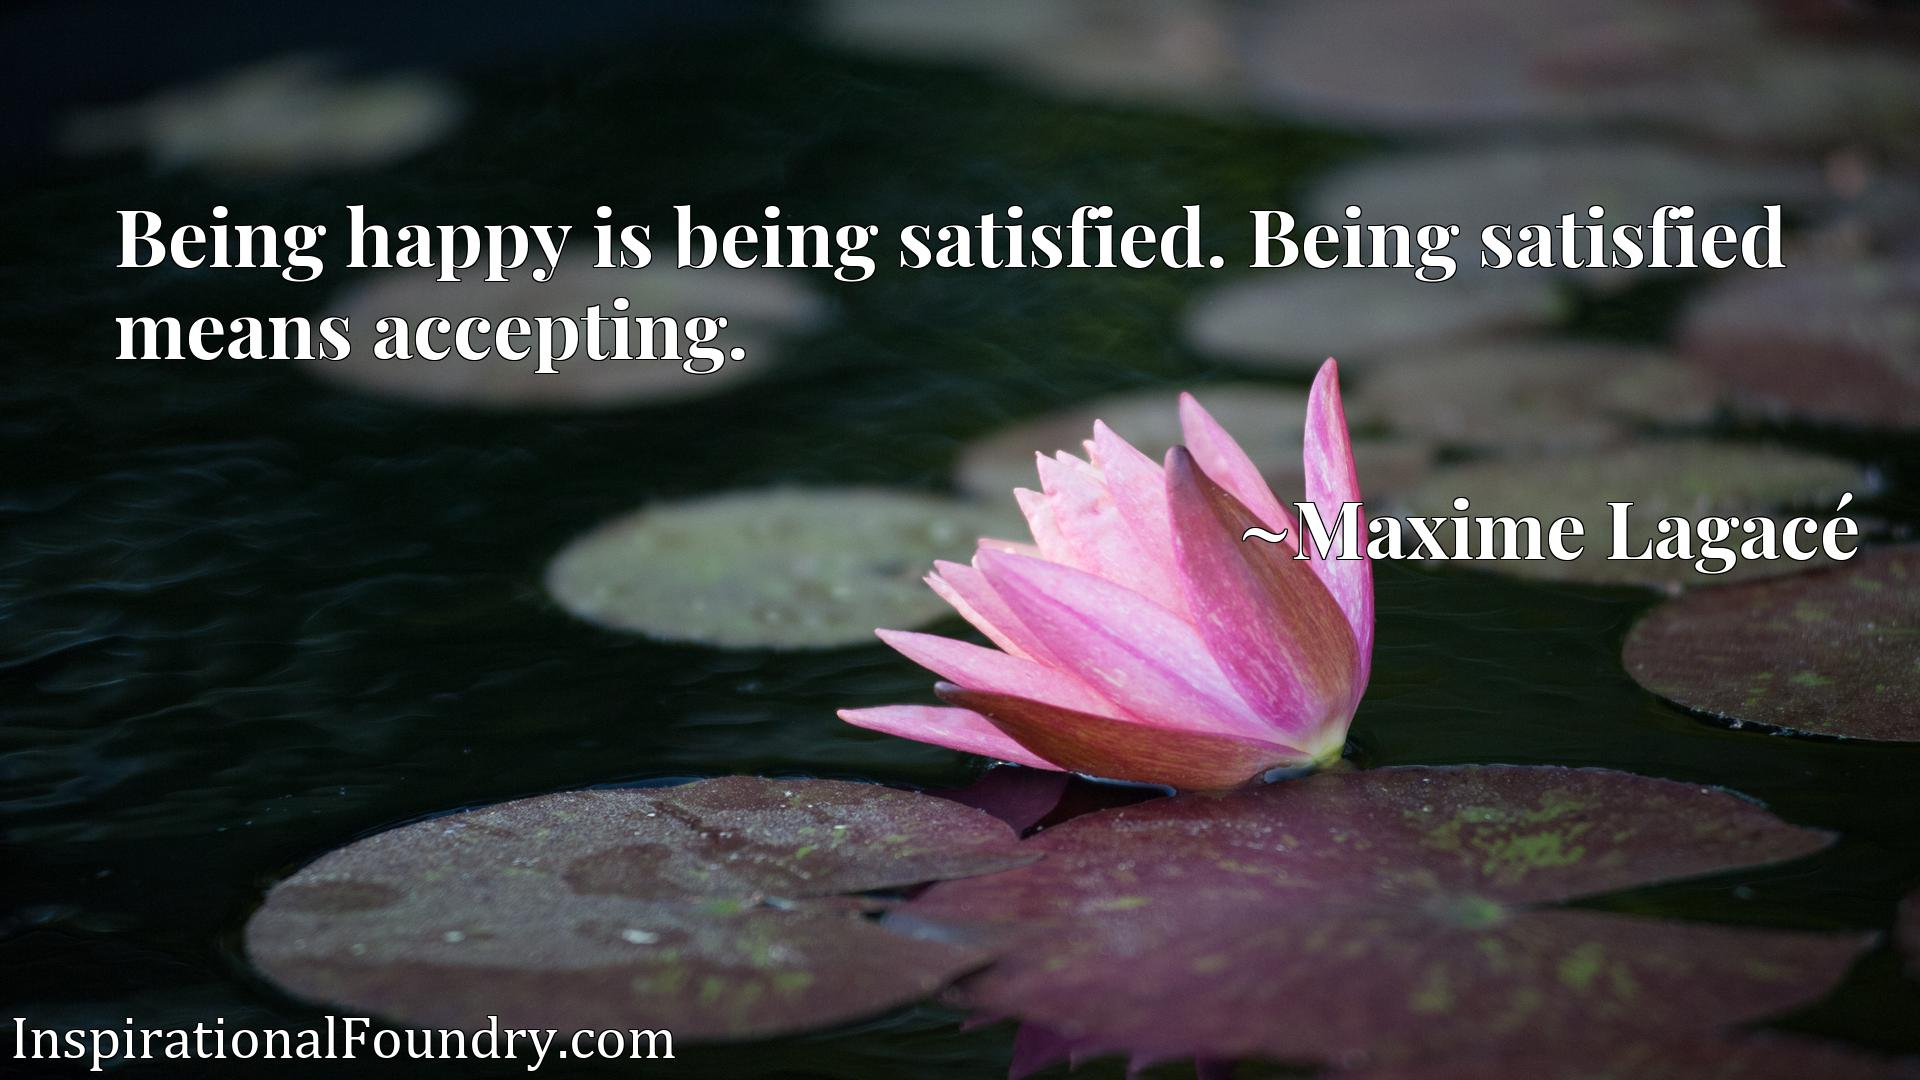 Being happy is being satisfied. Being satisfied means accepting.